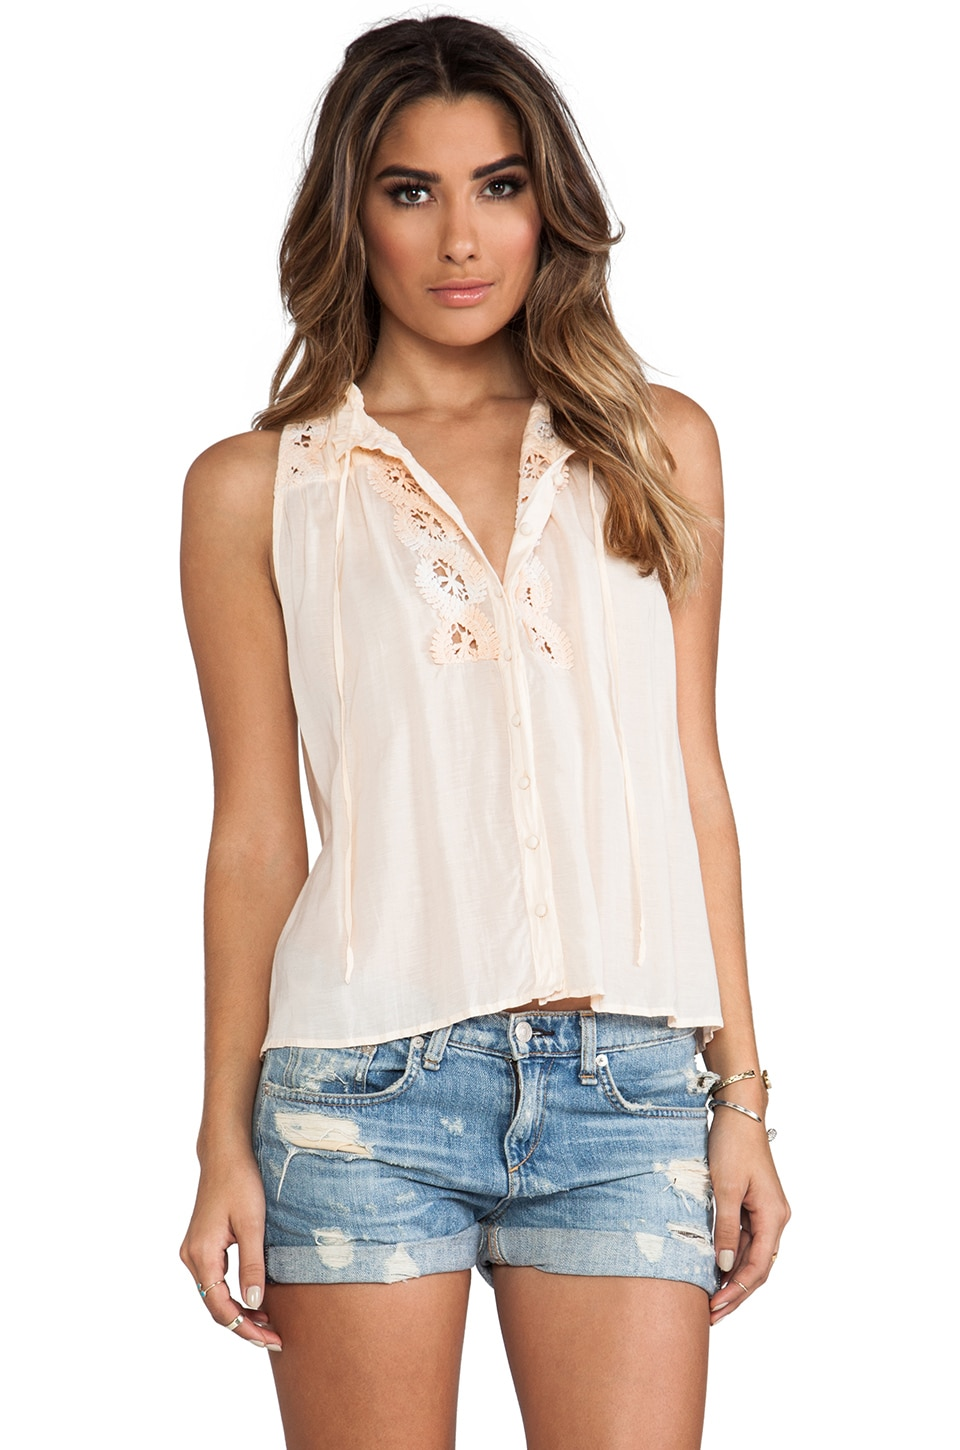 Free People Lace Inset Collar Top in Light Peach